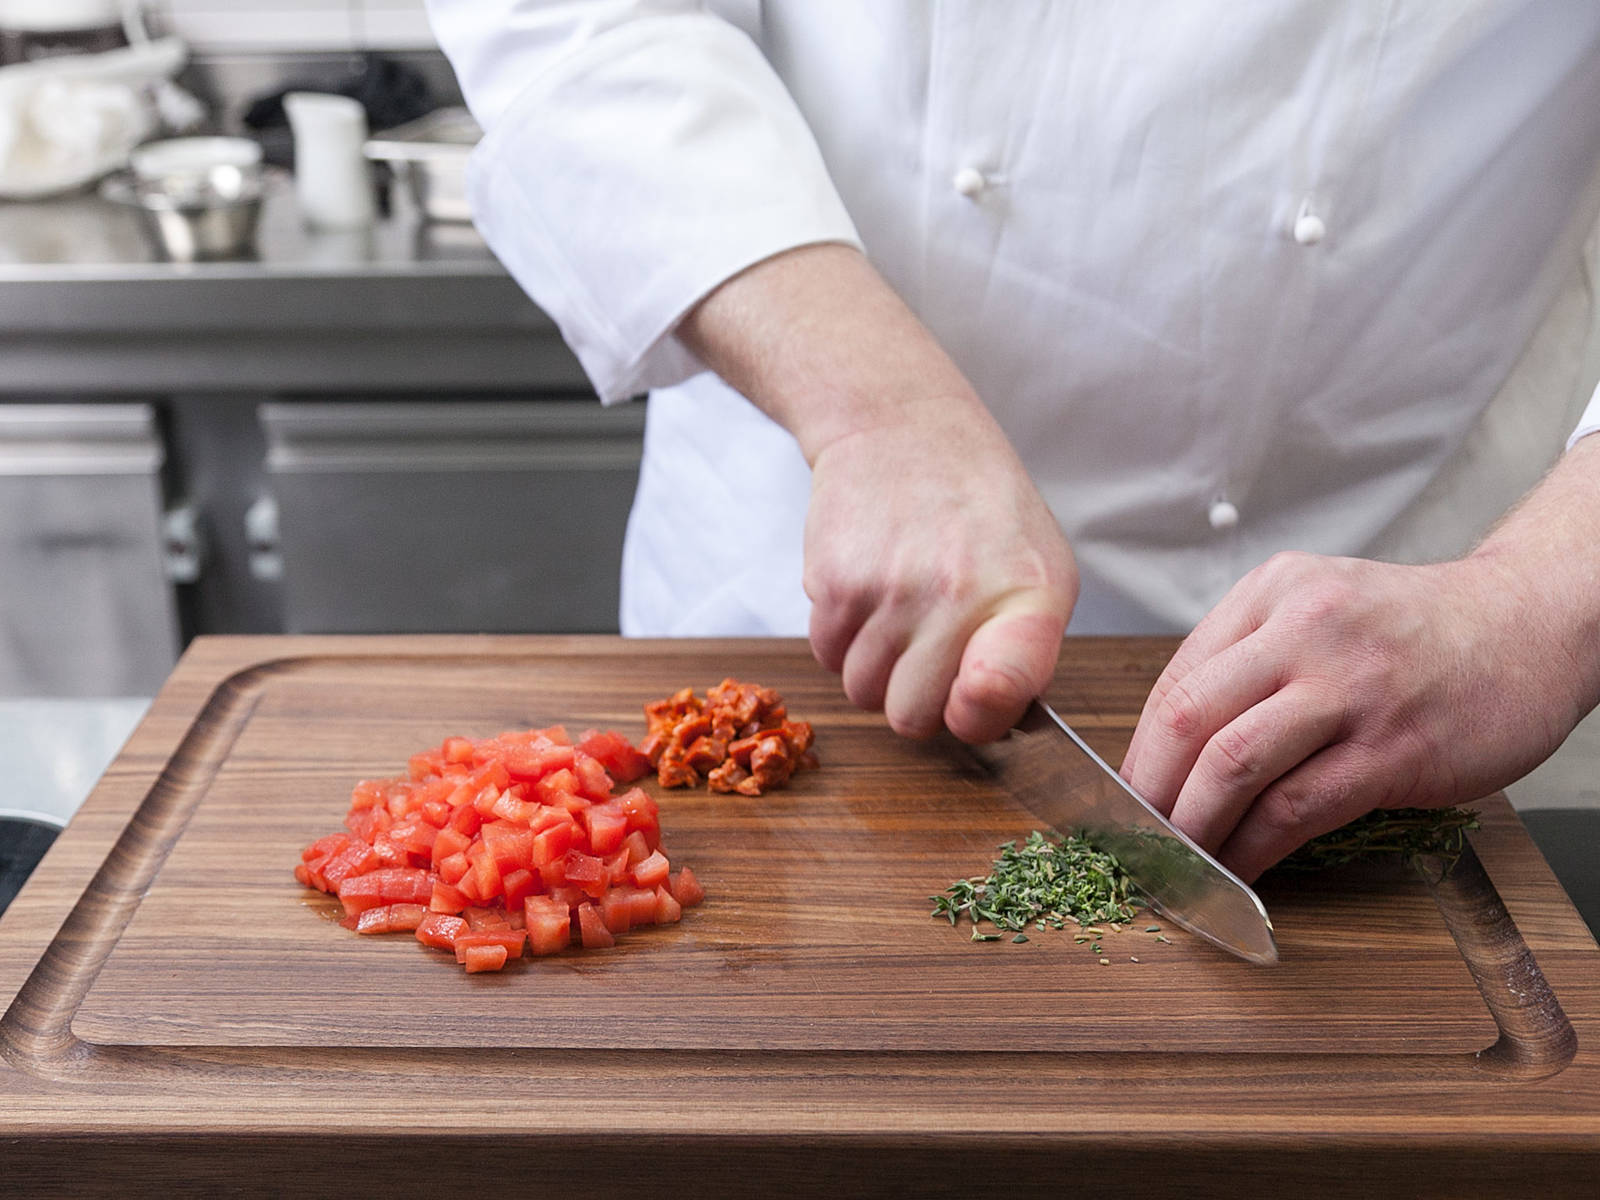 Peel tomatoes and cut into quarters. Remove core and dice. Peel and finely dice shallot. Finely dice chorizo. Remove half of thyme leaves from sprigs and chop.